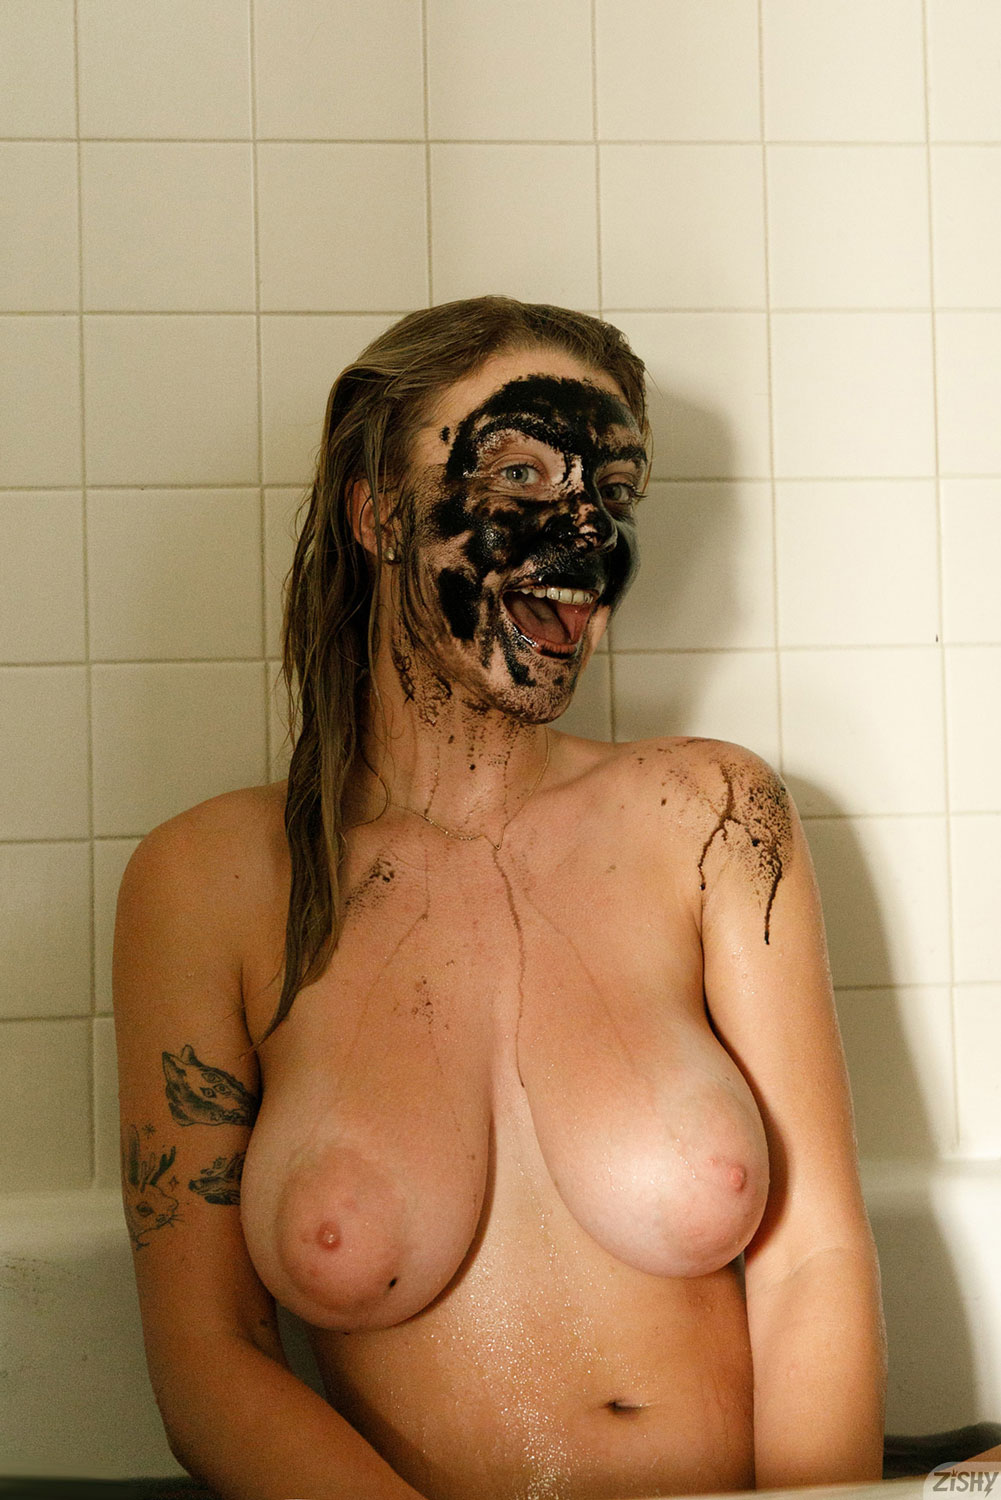 Zishy: Gabbie Carter with a Face Mask 8